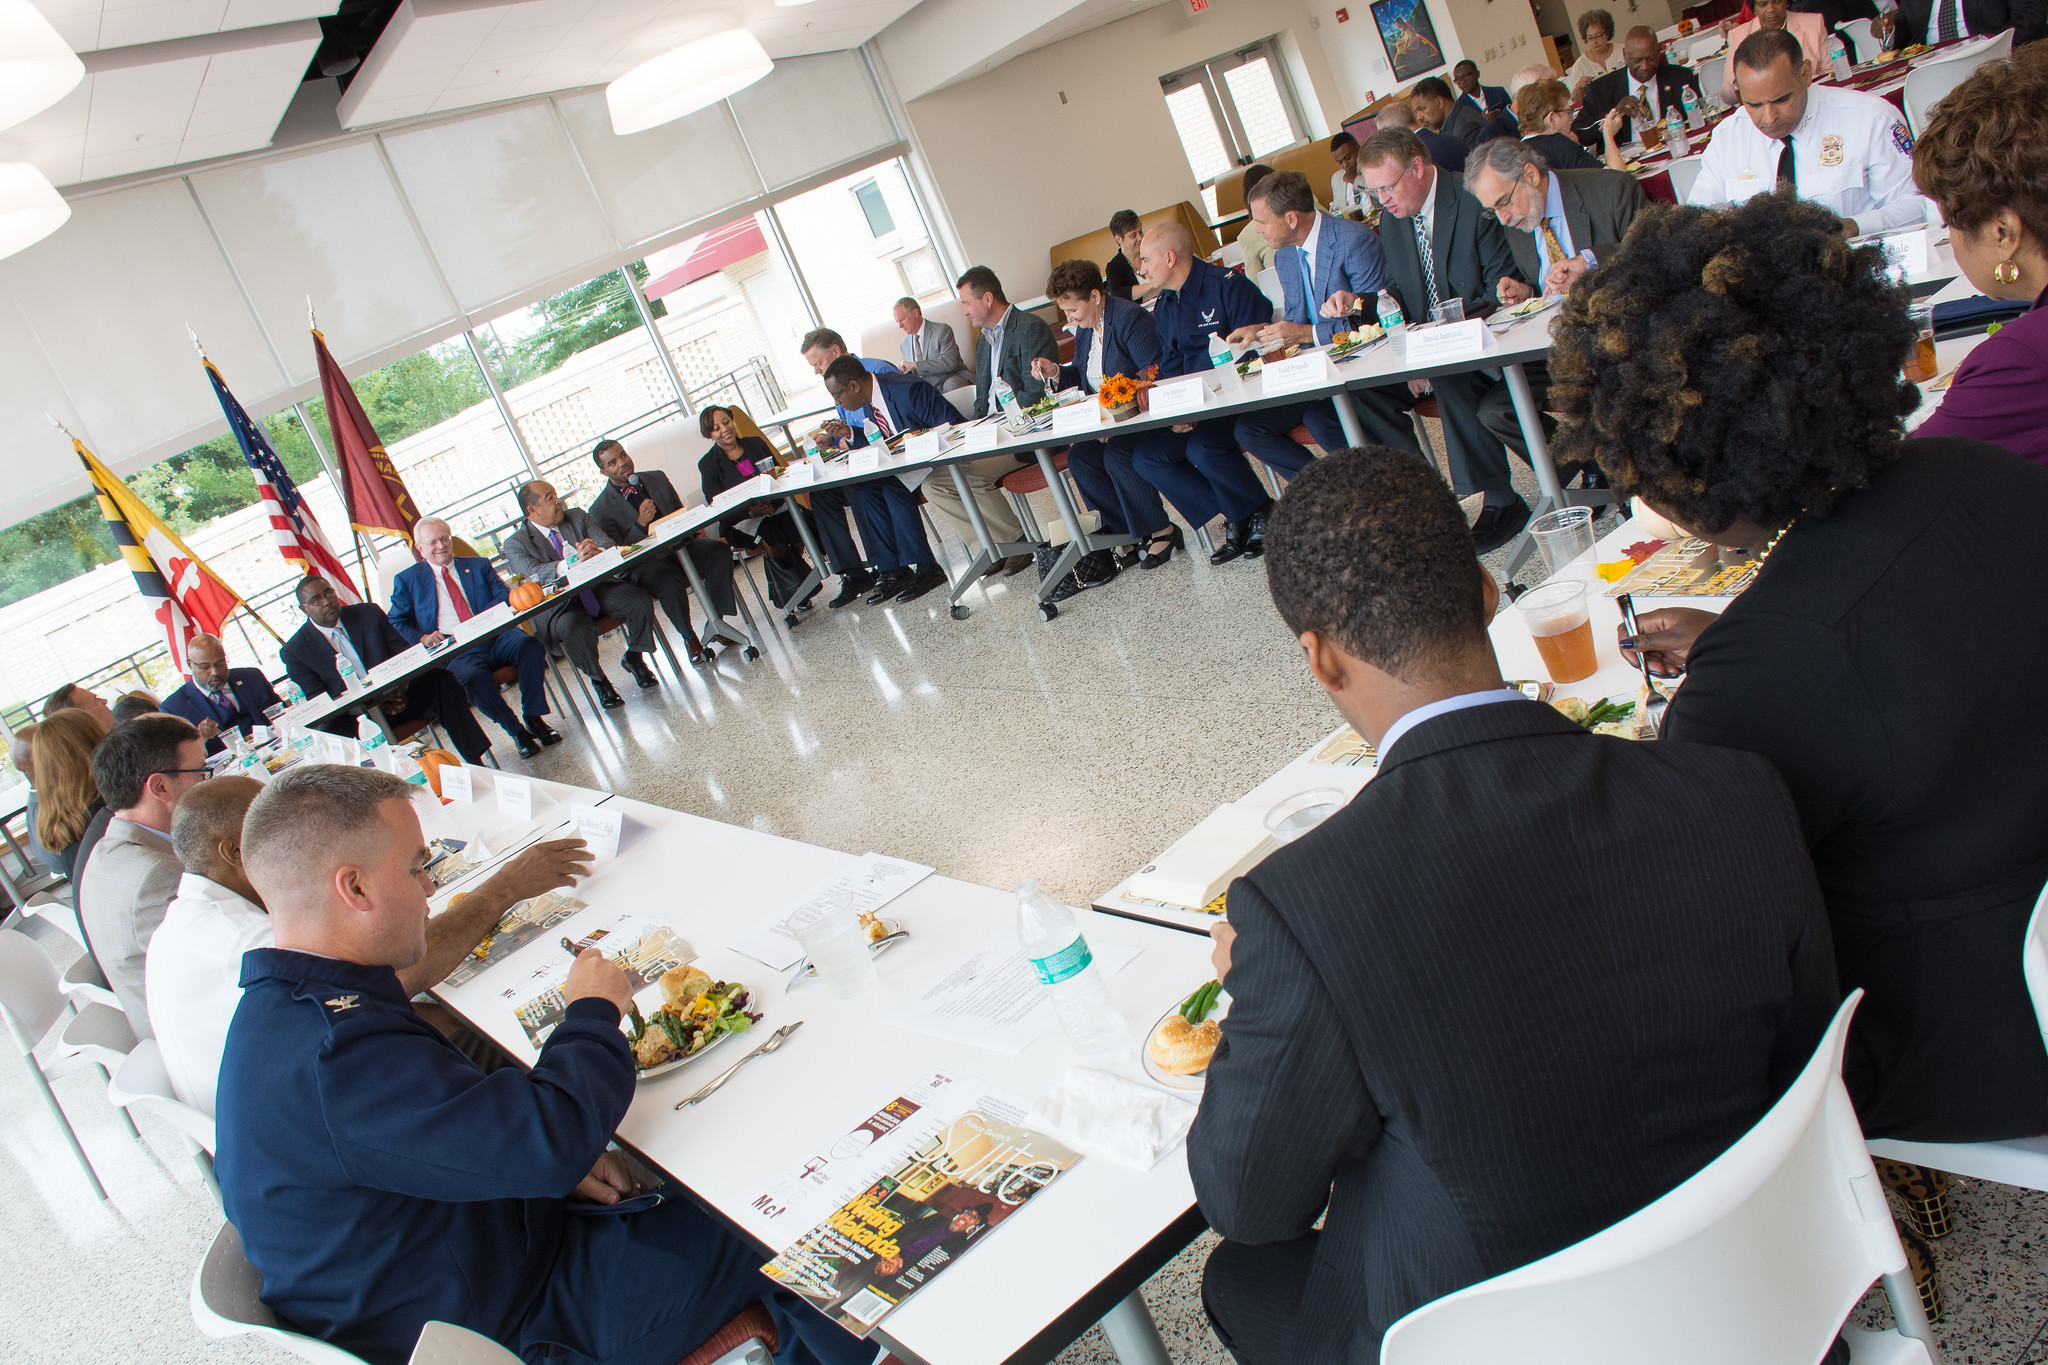 BMHS is often the site of key business and community meetings such as the Greater Prince George's Business Roundtable in September 2018. PHOTO: RAOUL DENNIS // PRINCE GEORGES SUITE MAGAZINE & MEDIA